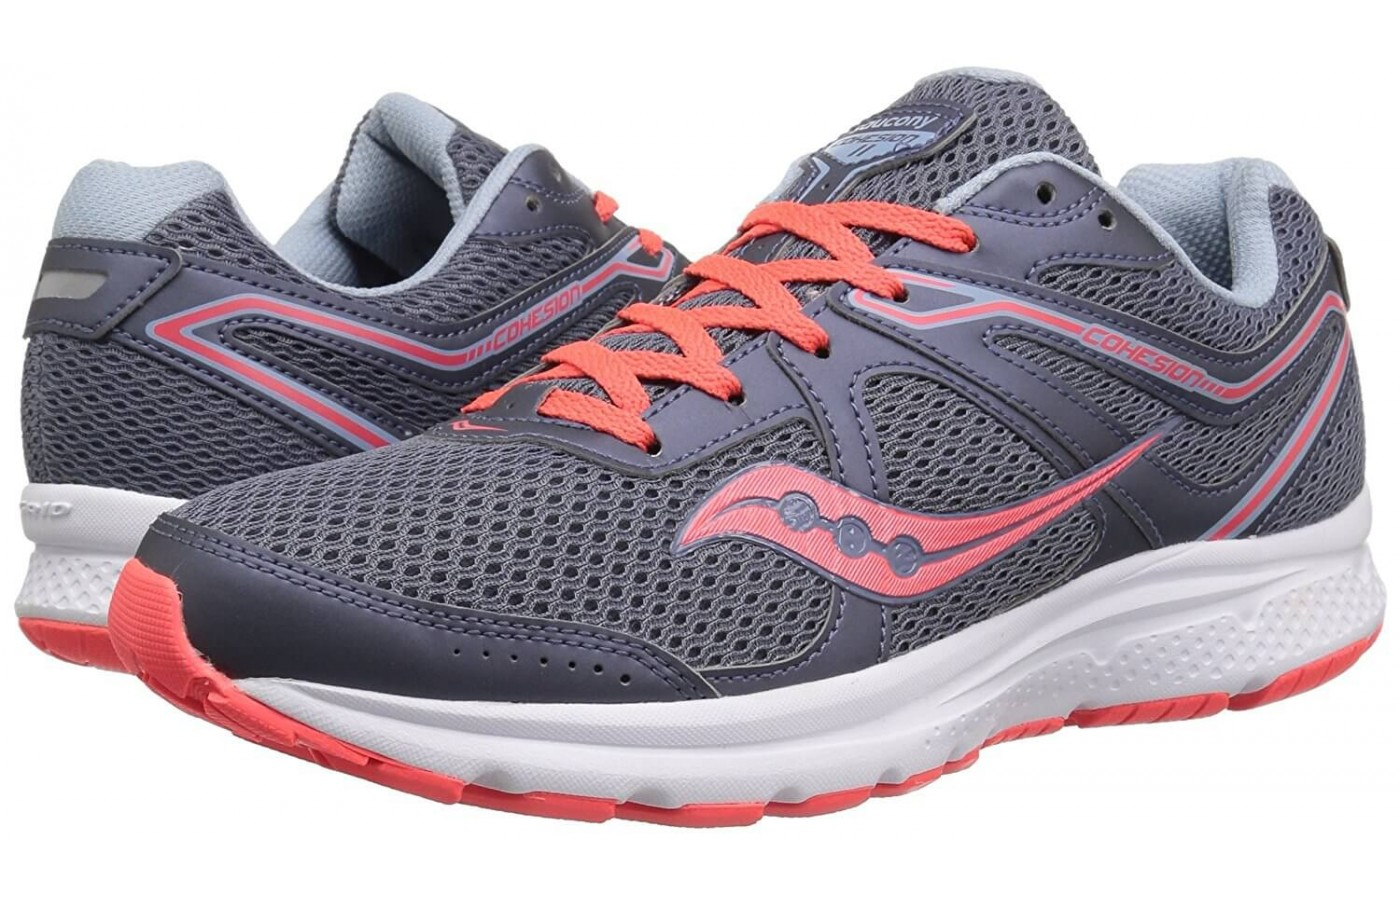 The Saucony Cohesion 11 features a GRID cushioning system